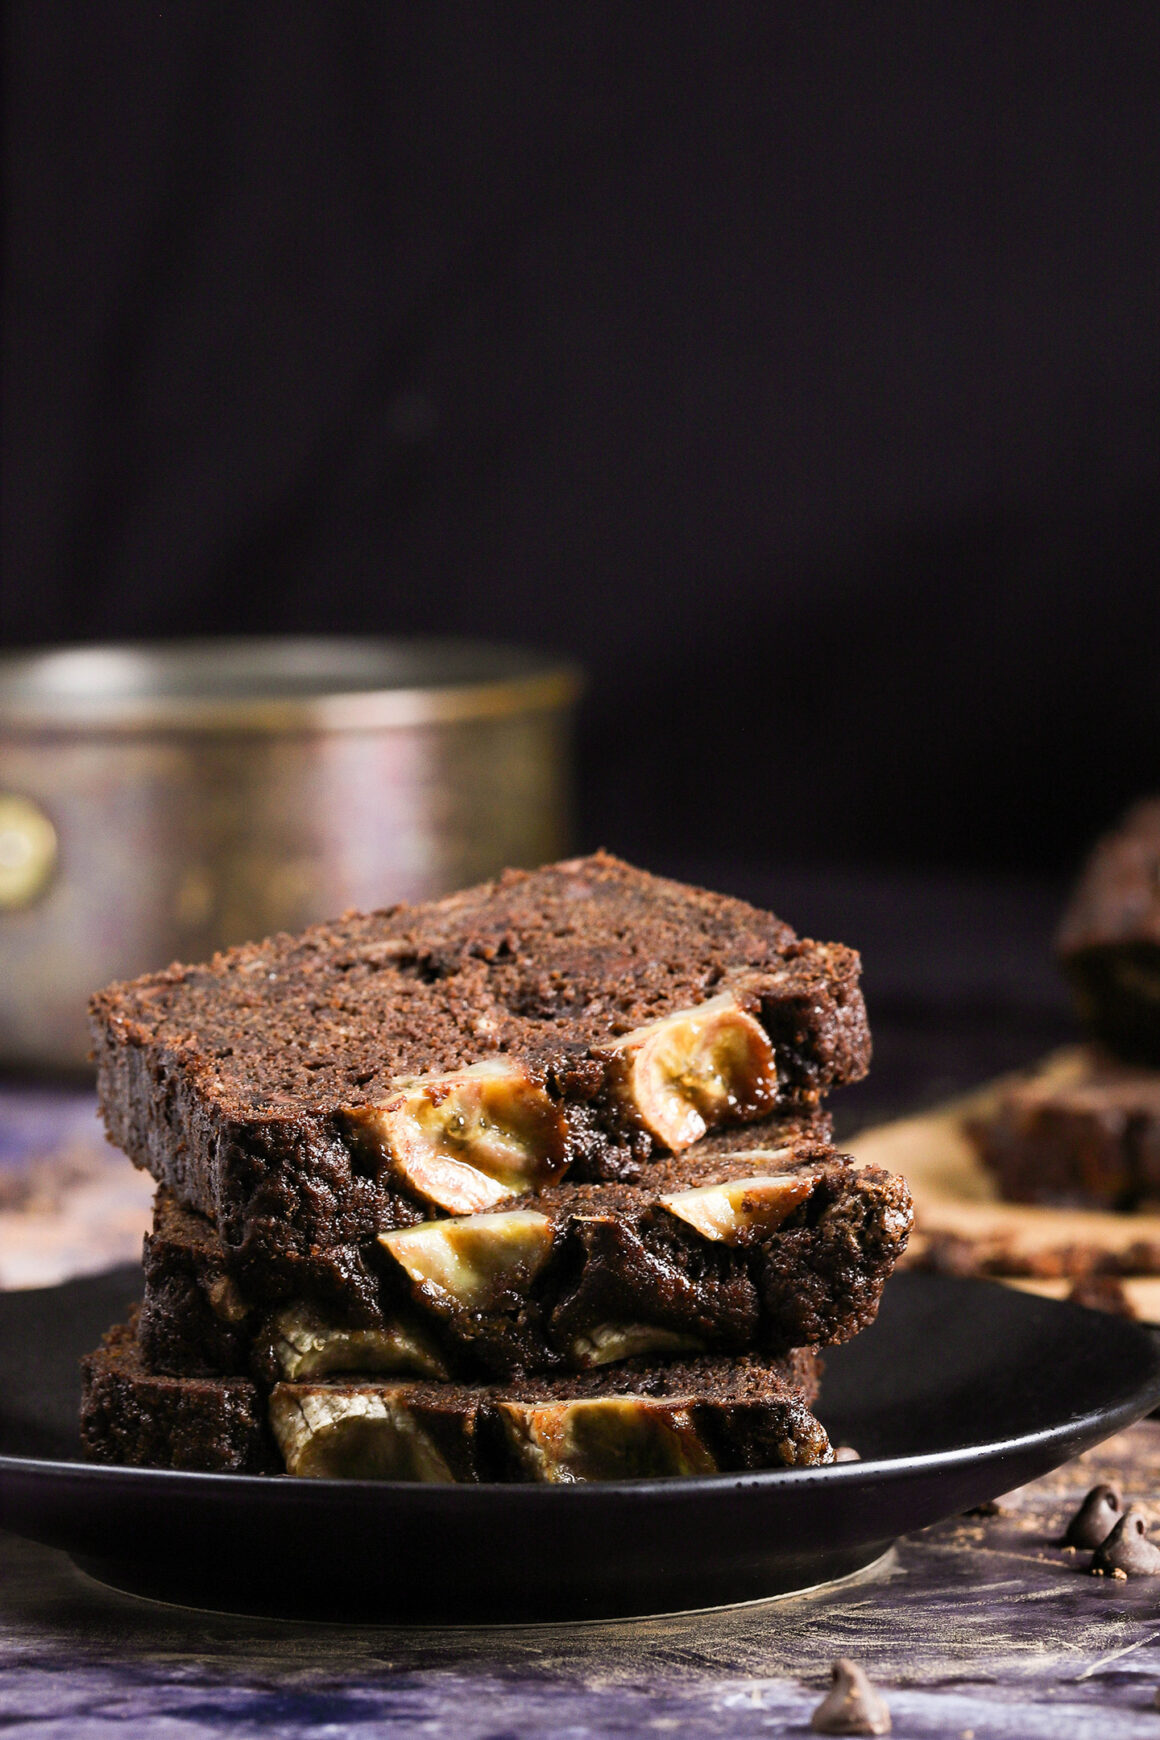 plate of chocolate banana bread slices